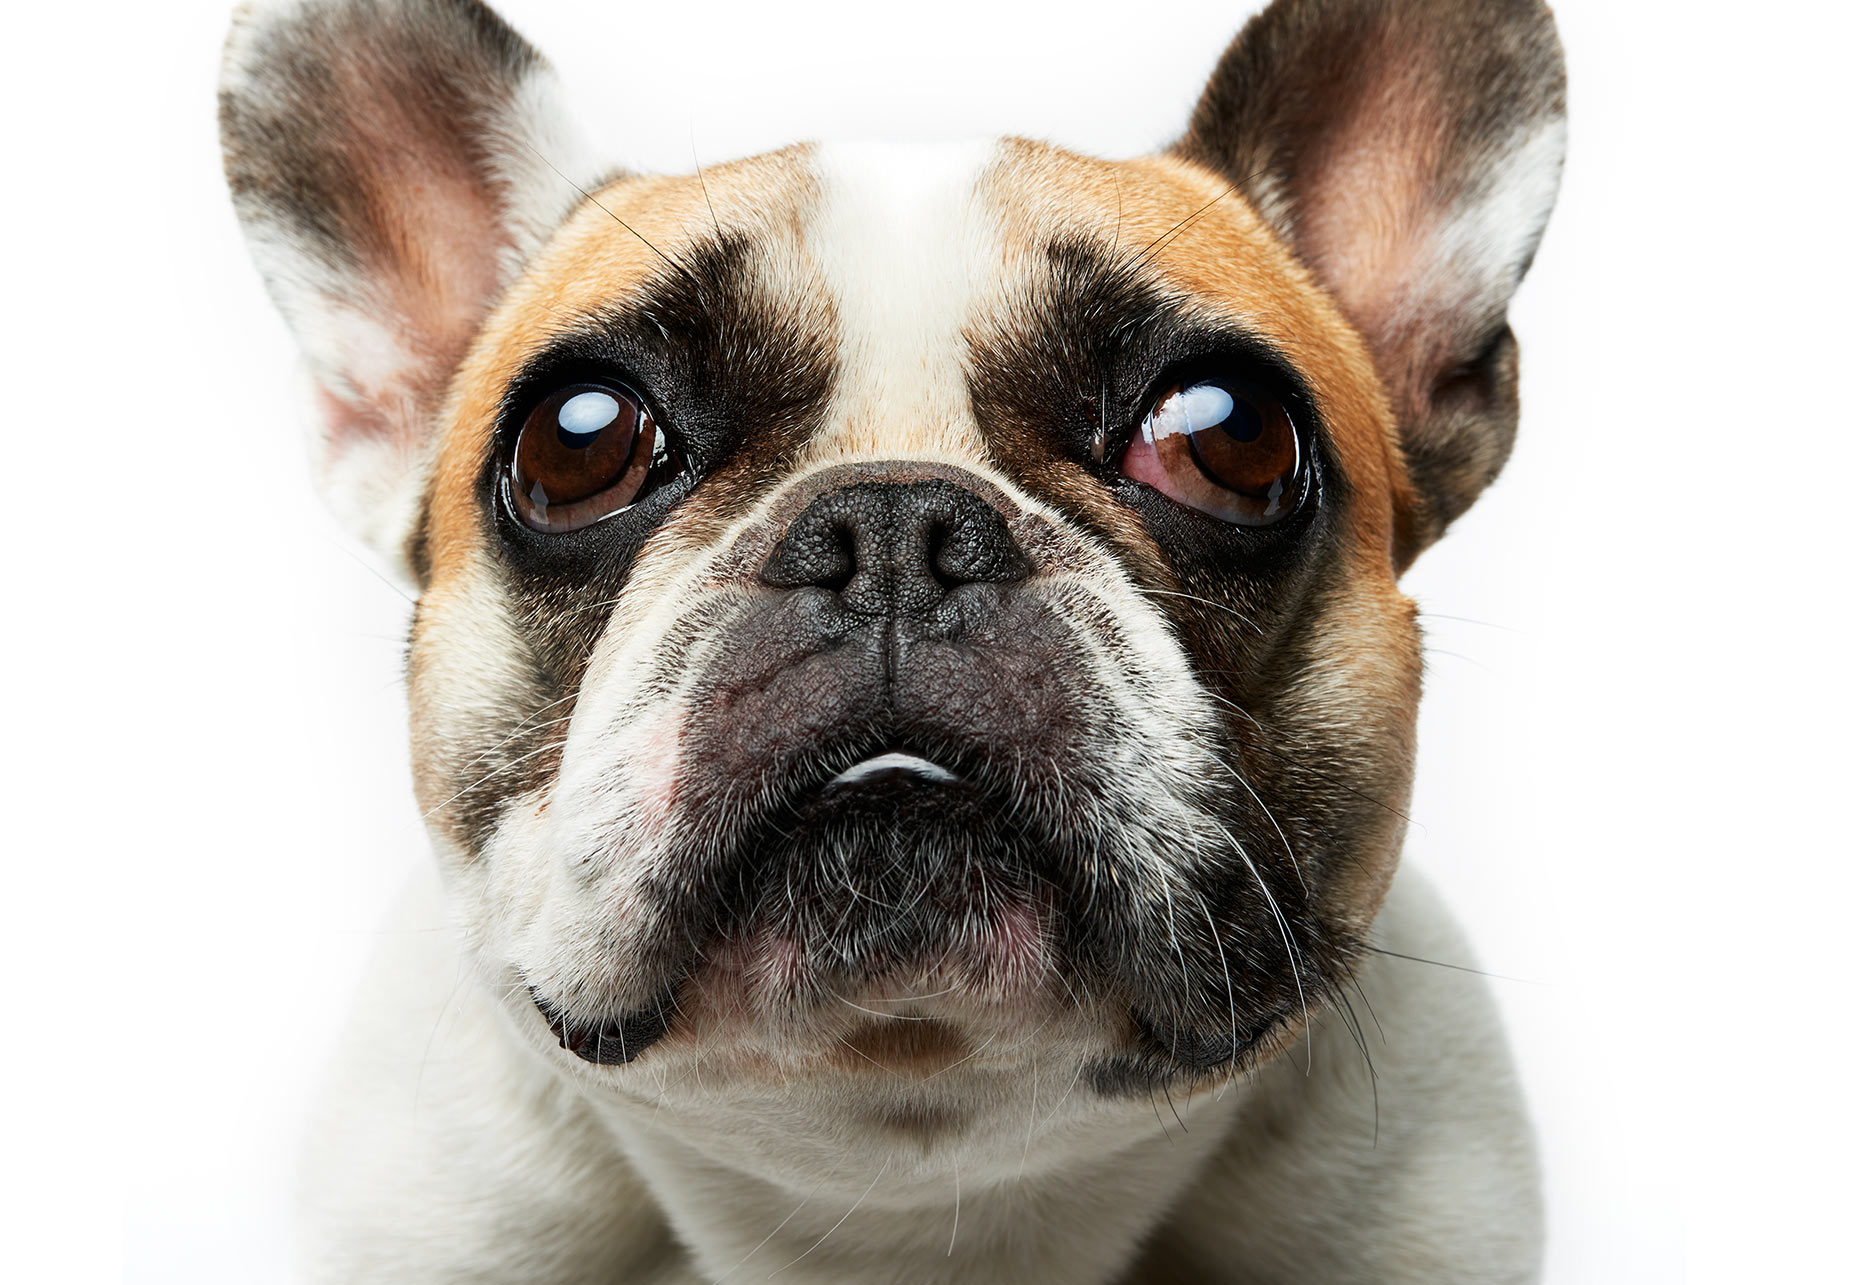 Commercial advertising animal photographer, Peter Samuels, for Zynga. Cute little French Bull Dog!